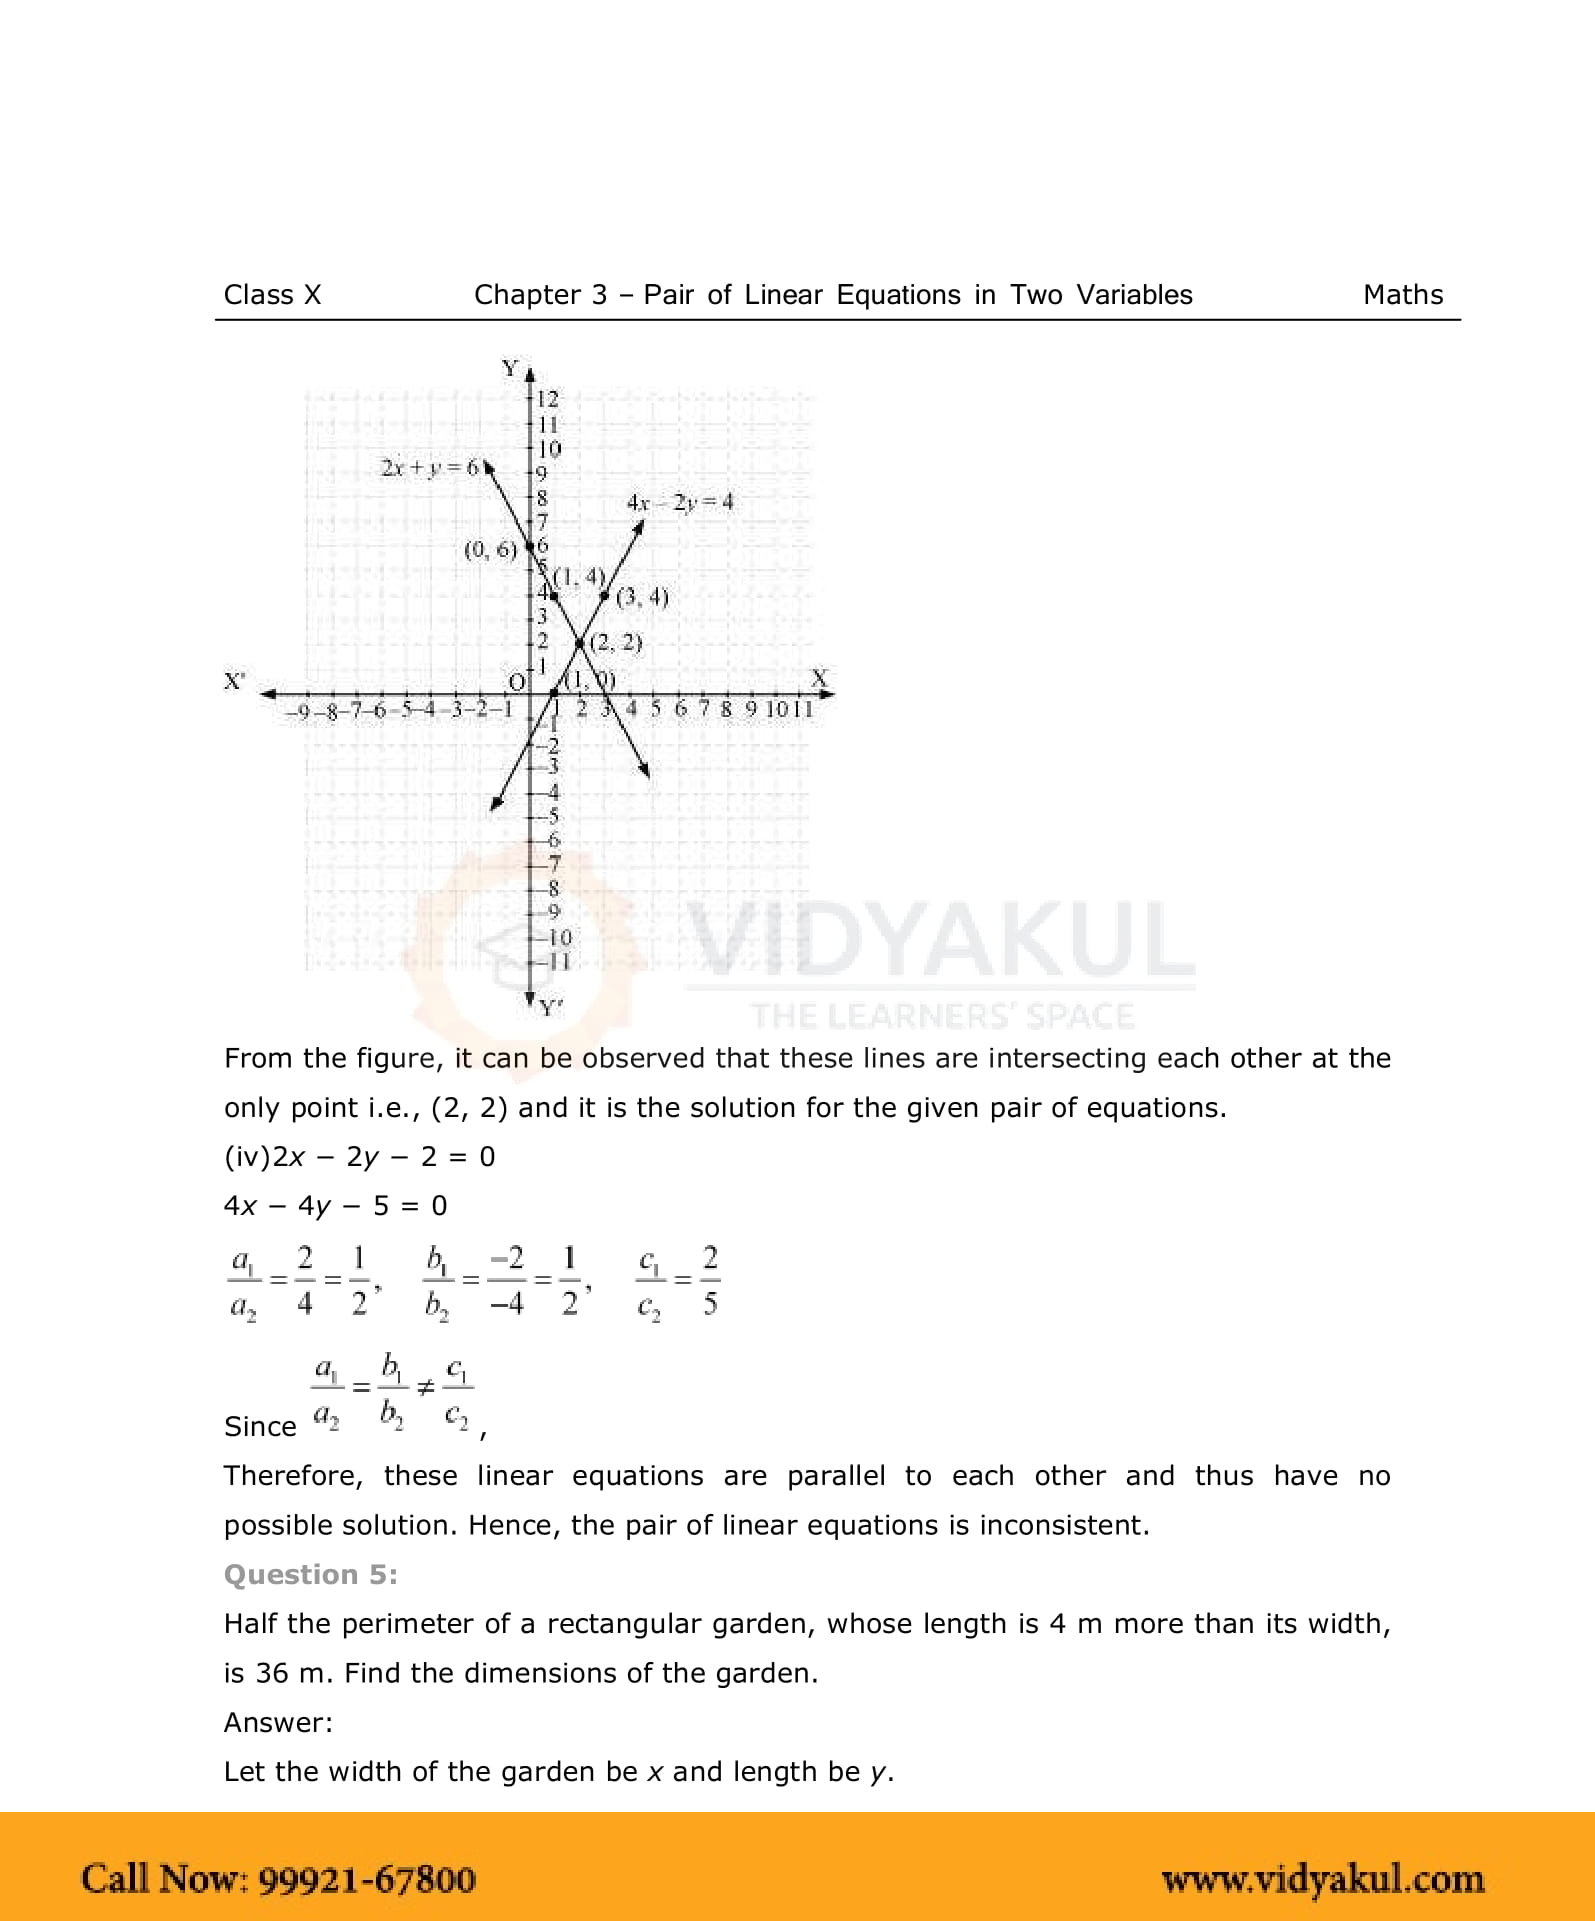 NCERT Solutions For Class 10 Maths Chapter 3 | Vidyakul